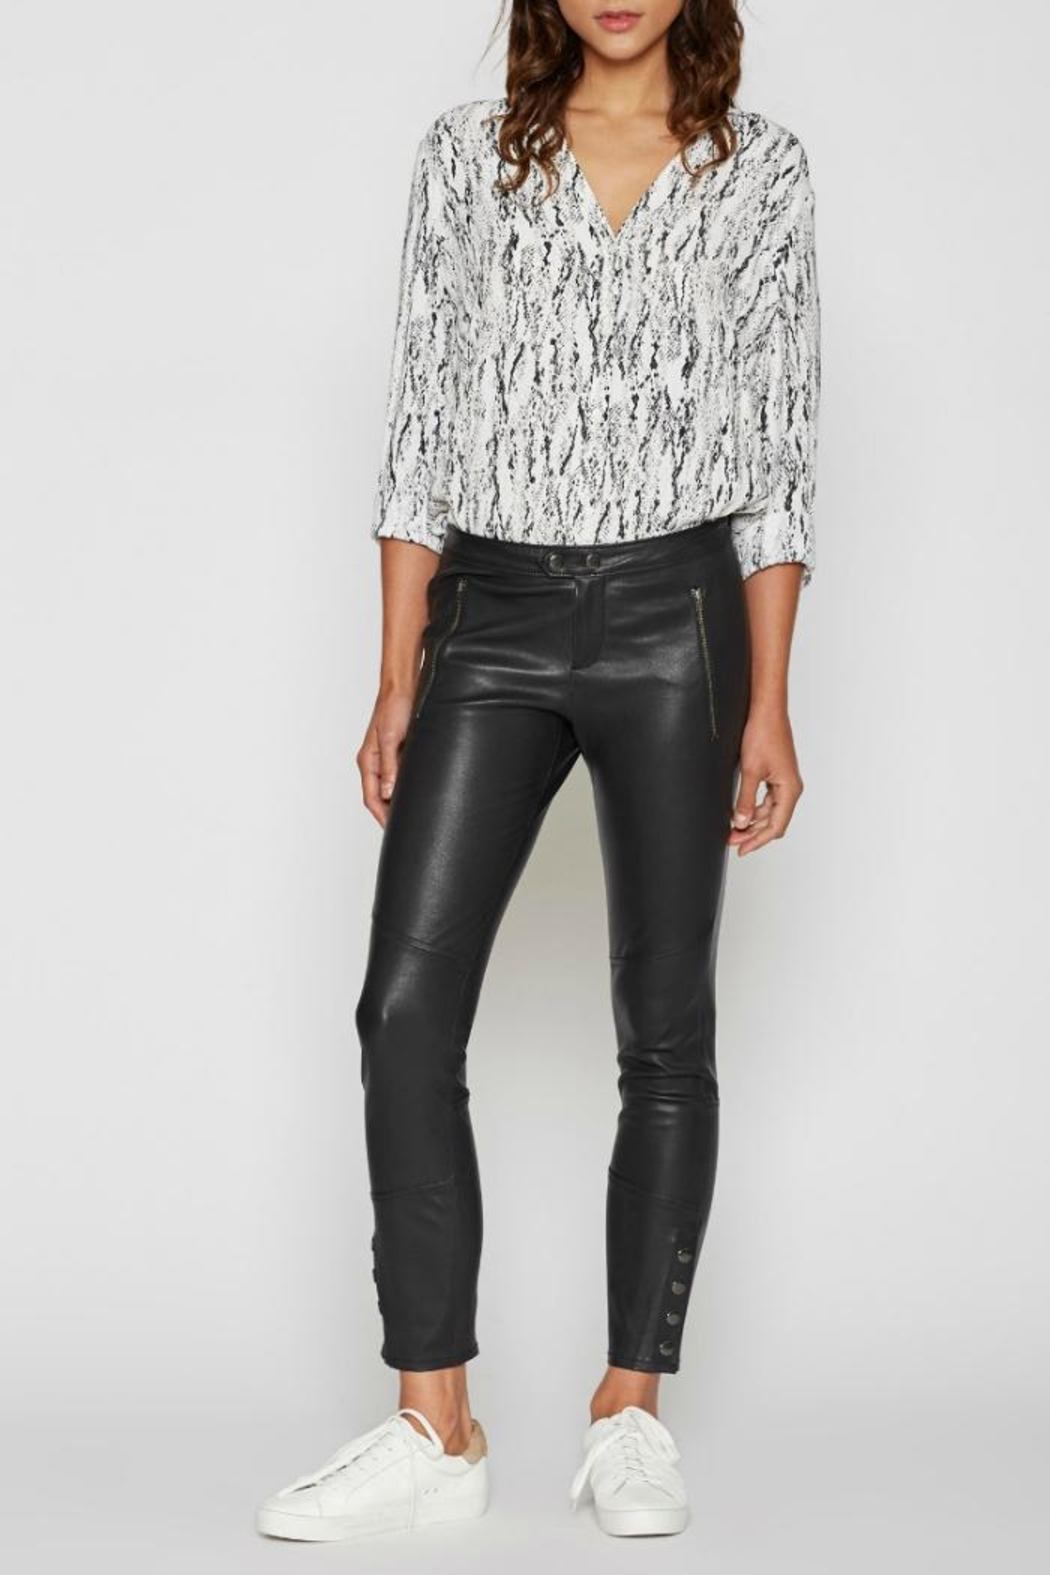 Joie Darnella Leather Pants - Front Cropped Image